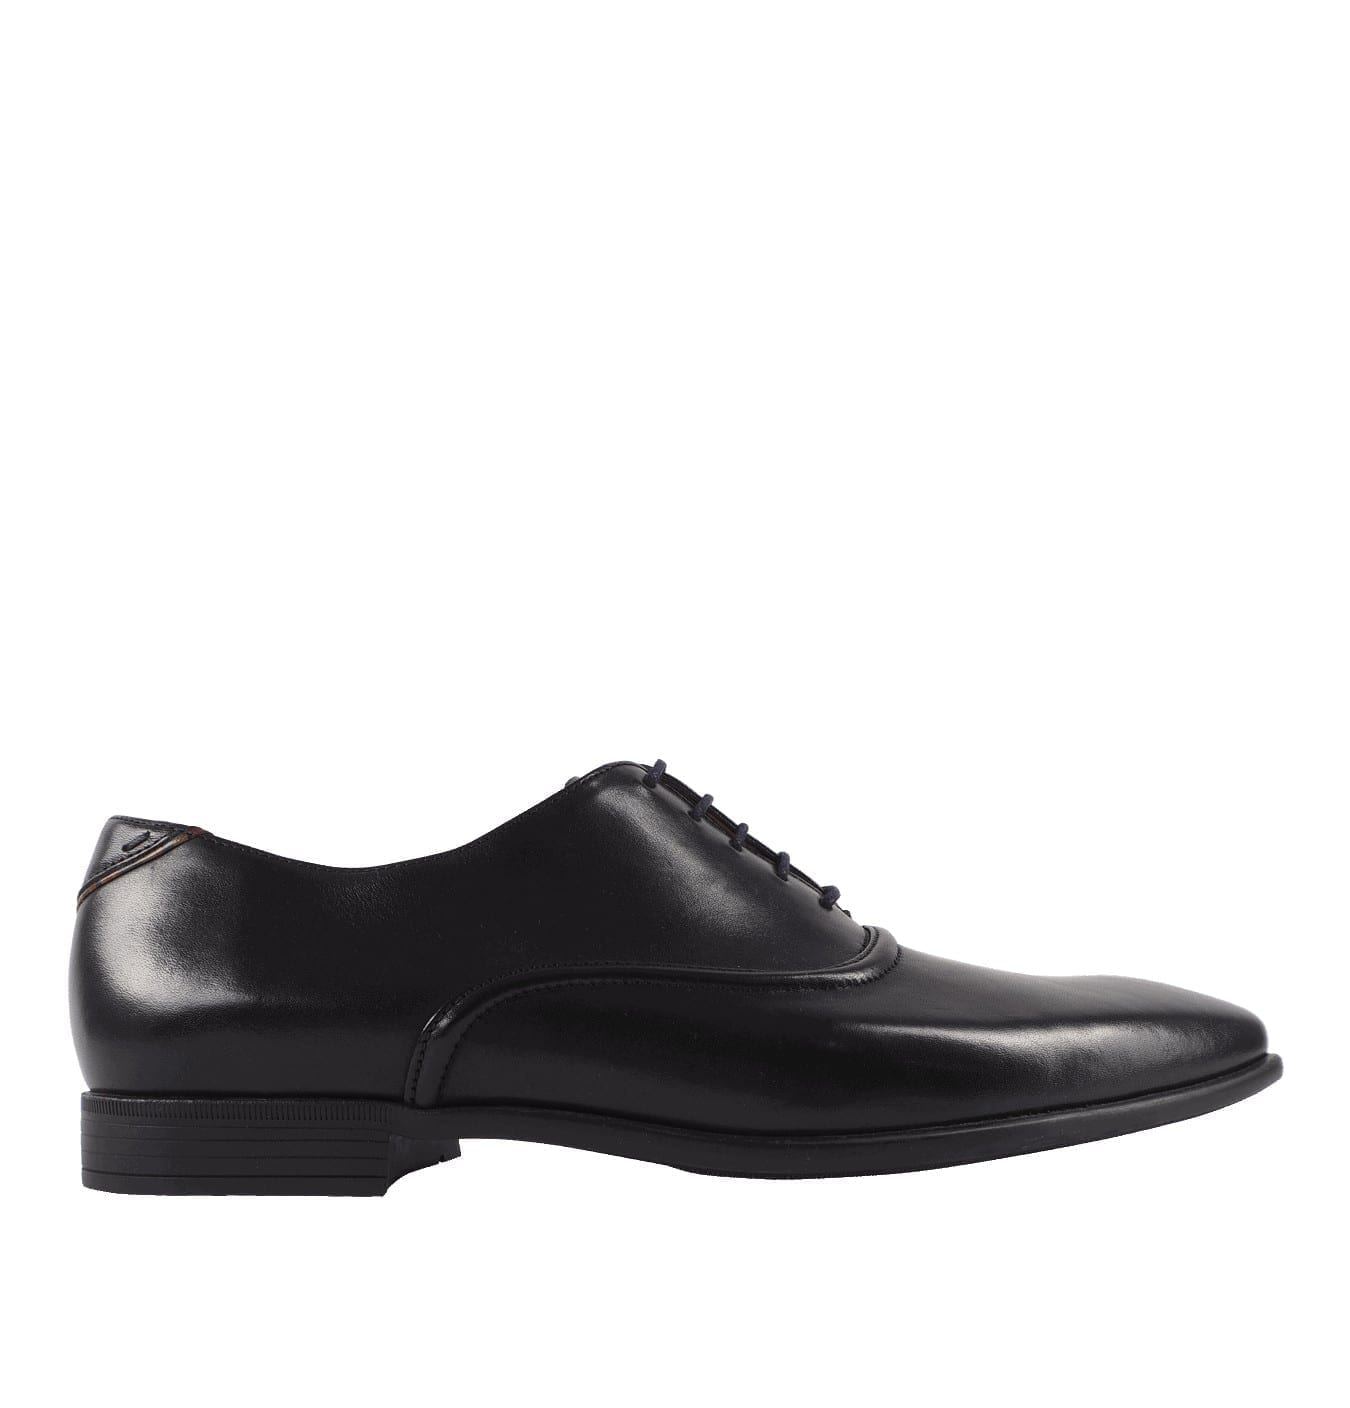 Image of   Men's Black Polished Leather 'Starling' Shoes